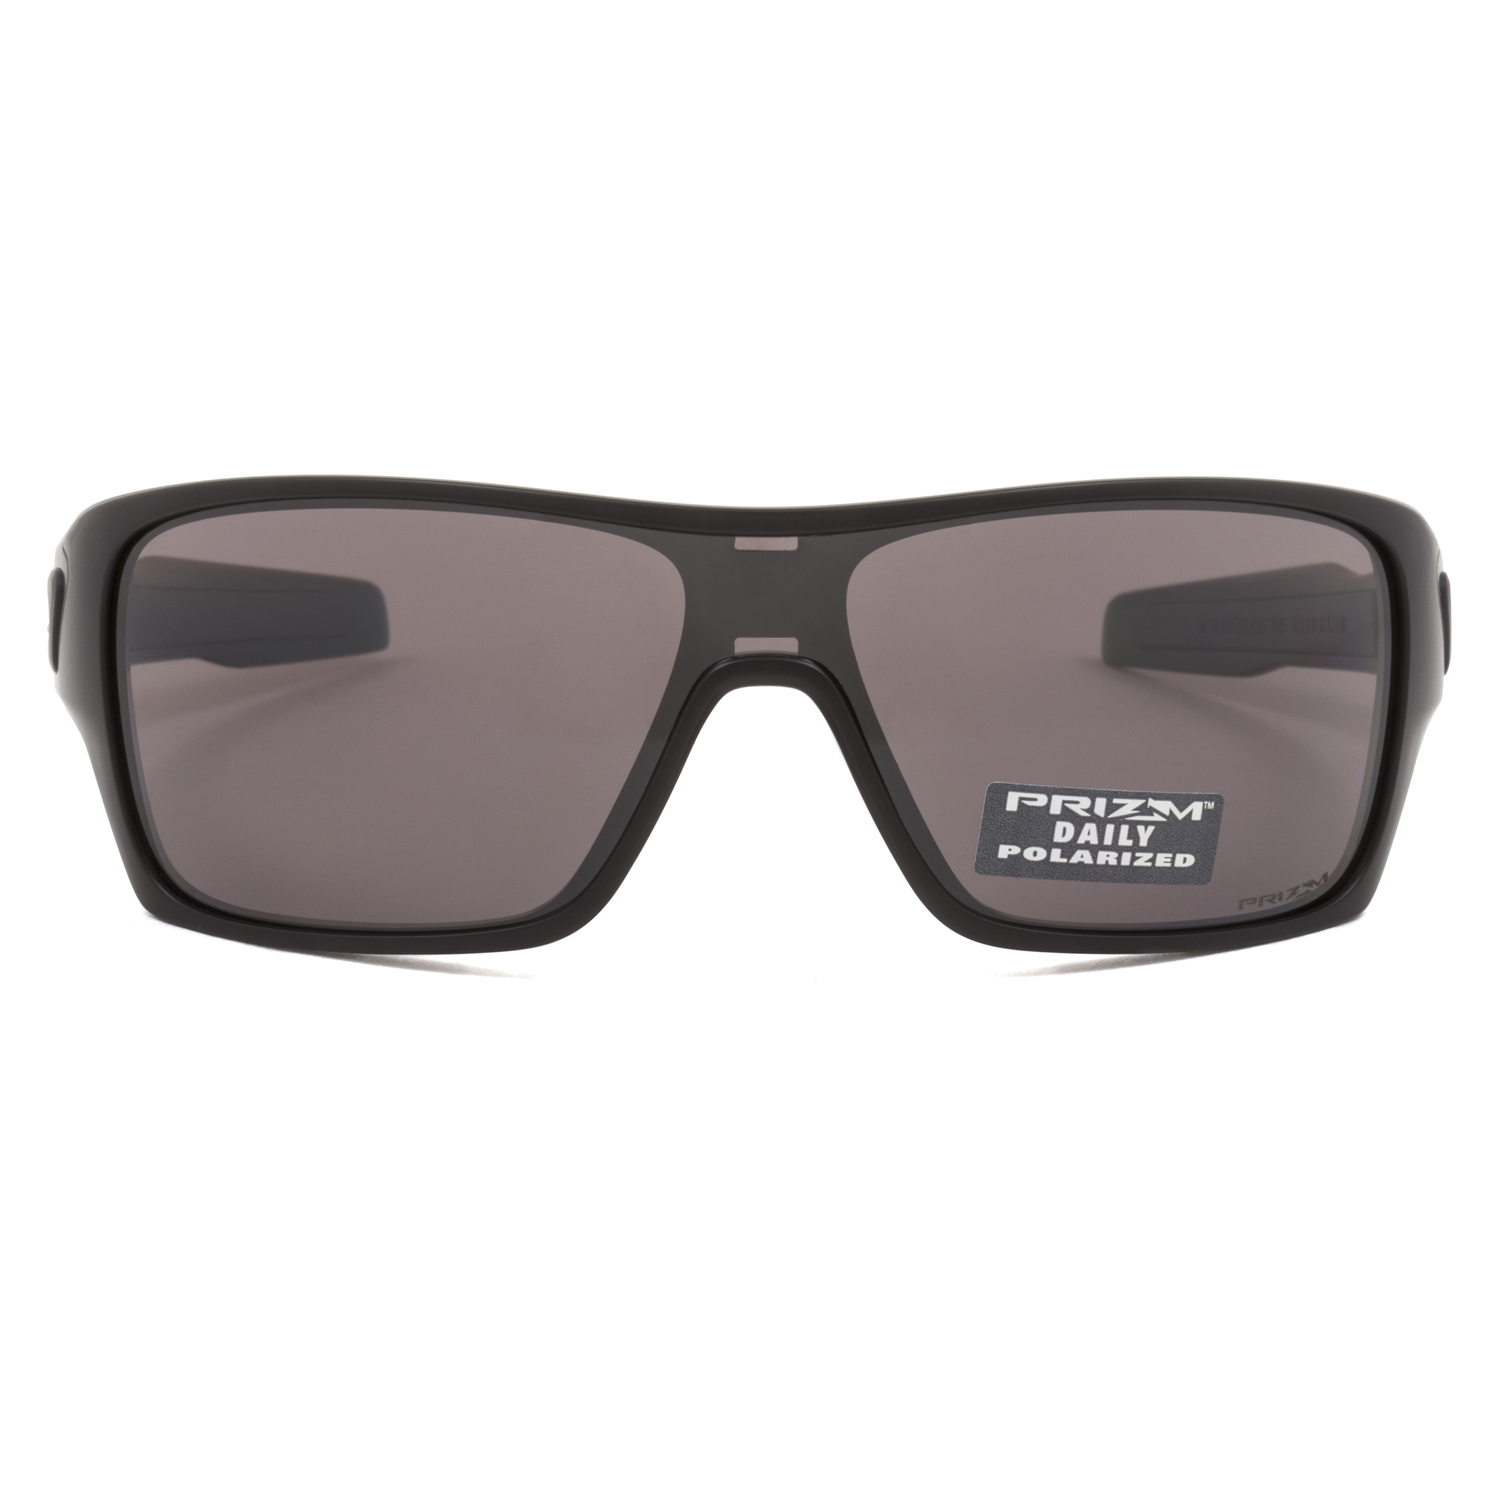 9f2d909f792 Oakley Turbine Rotor Polarized Sunglasses Pics